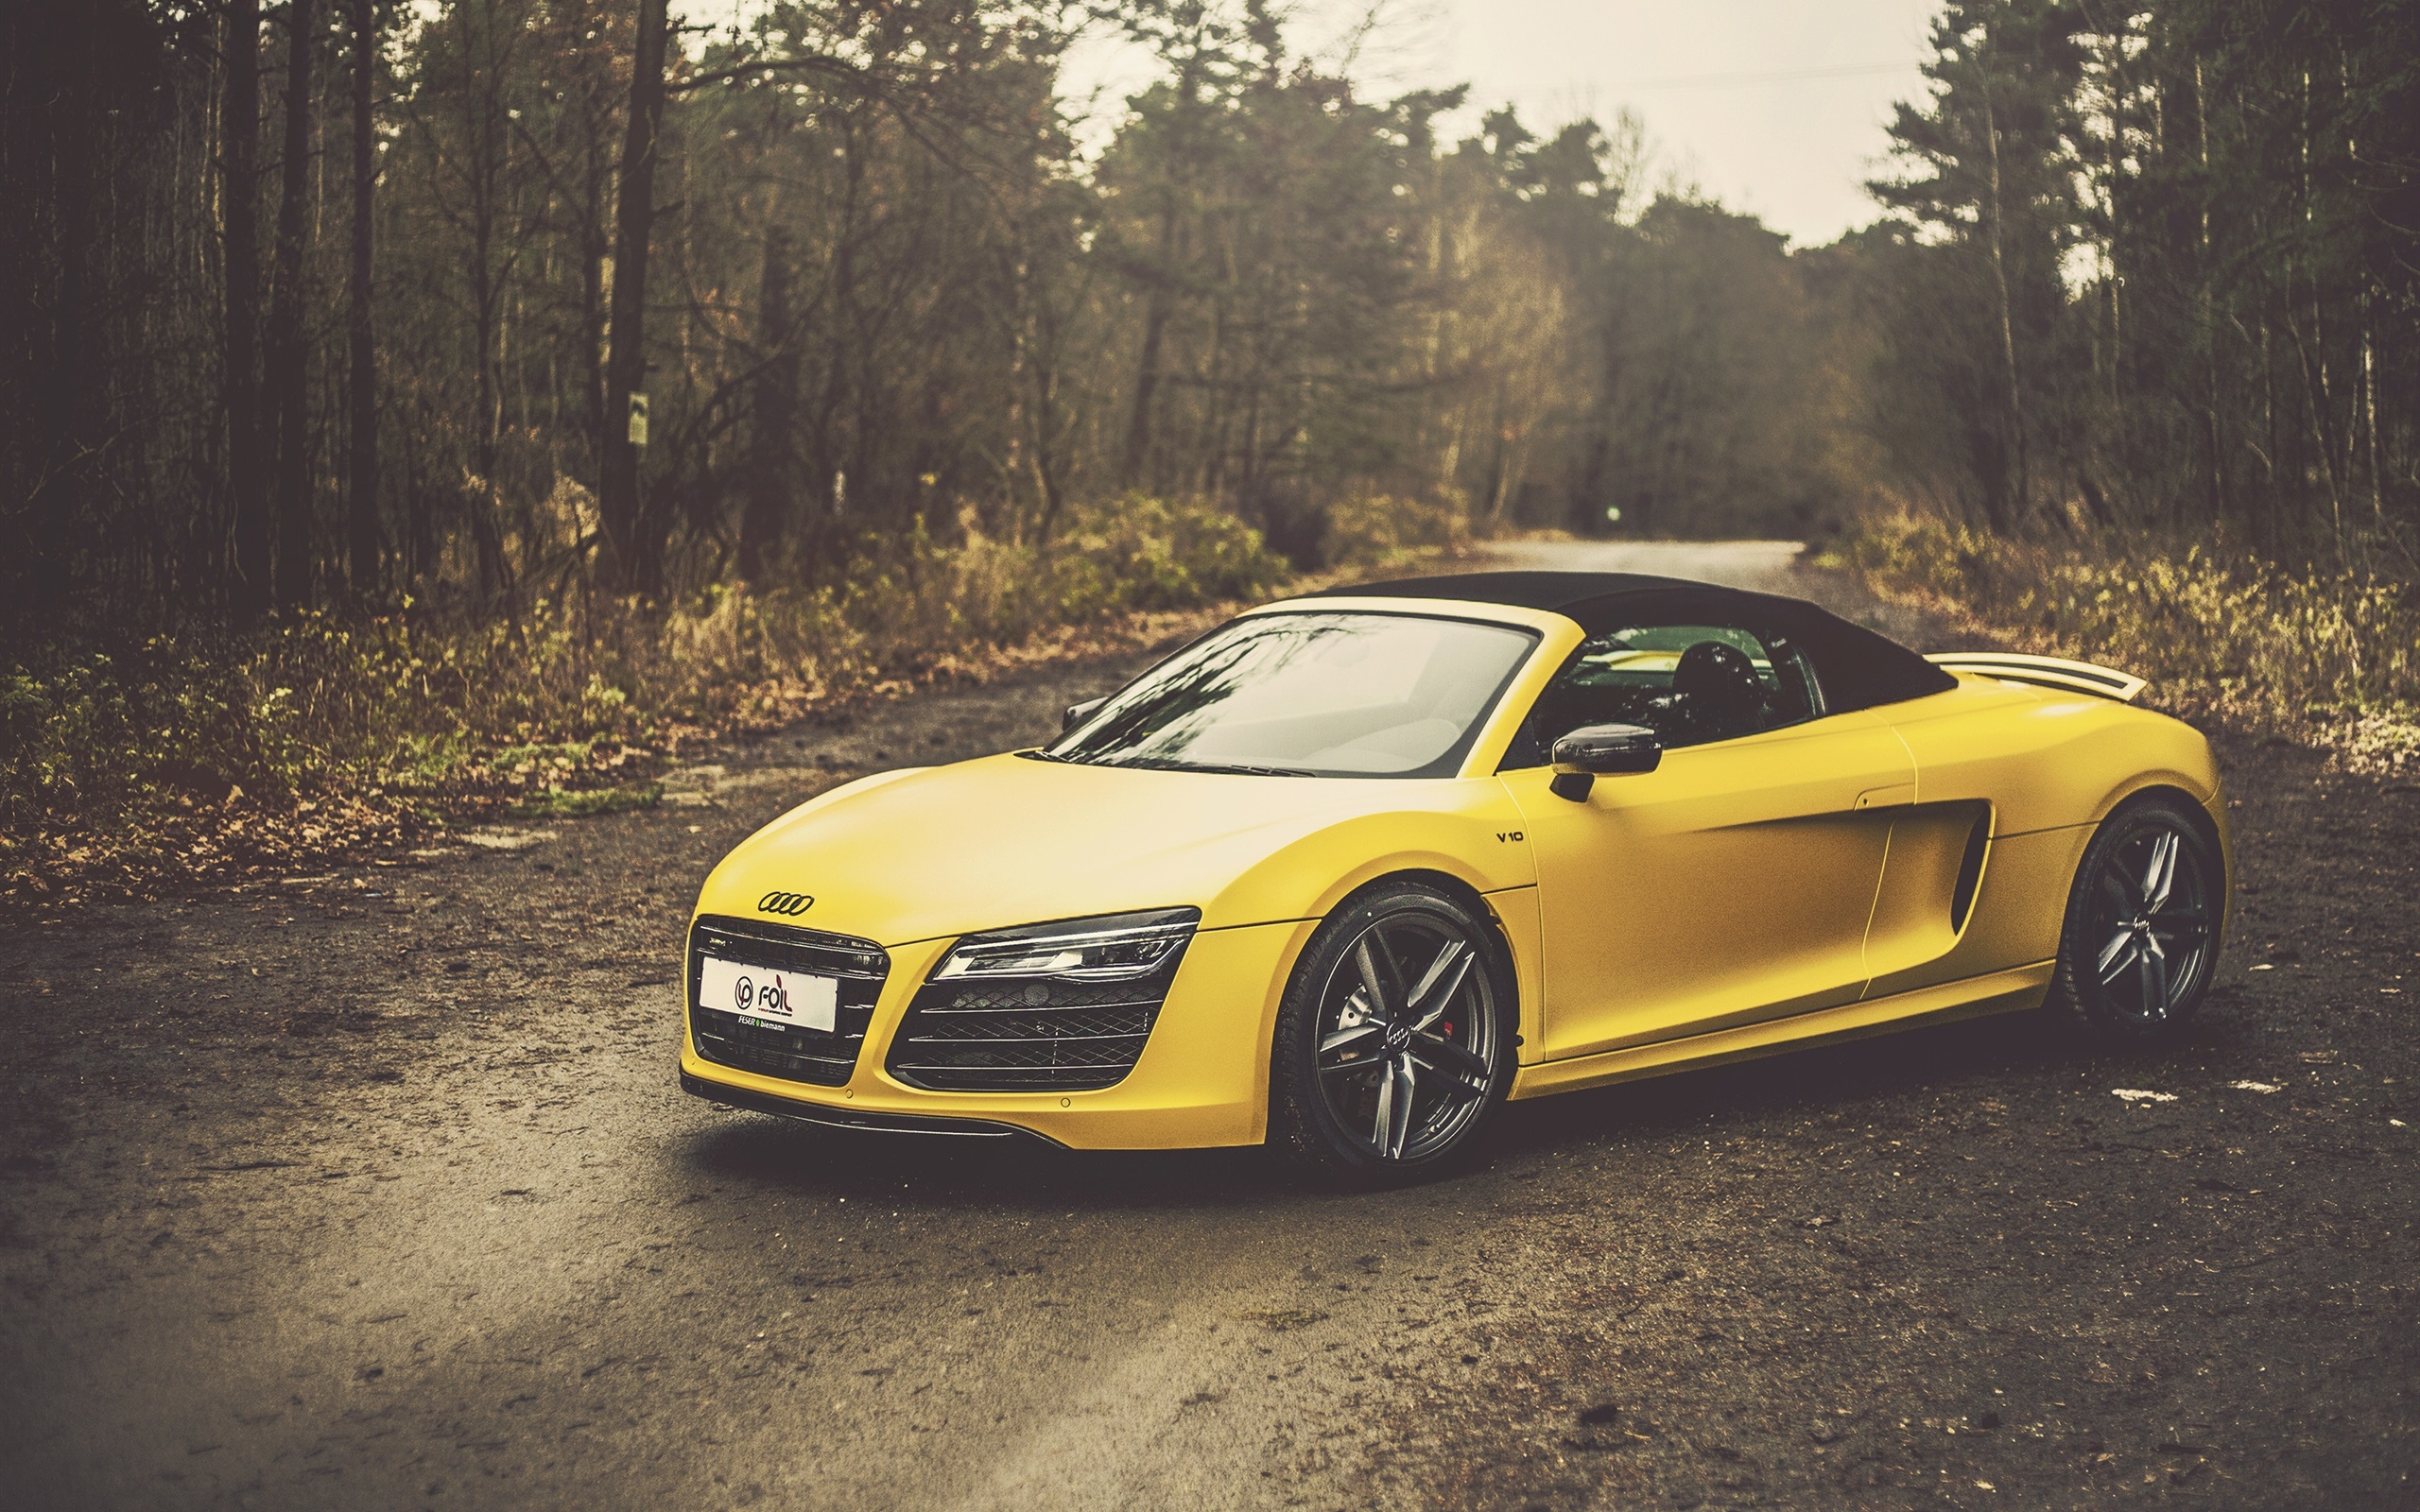 Wallpaper Audi R8 V10 Spyder Yellow Car 2560x1600 Hd Picture Image